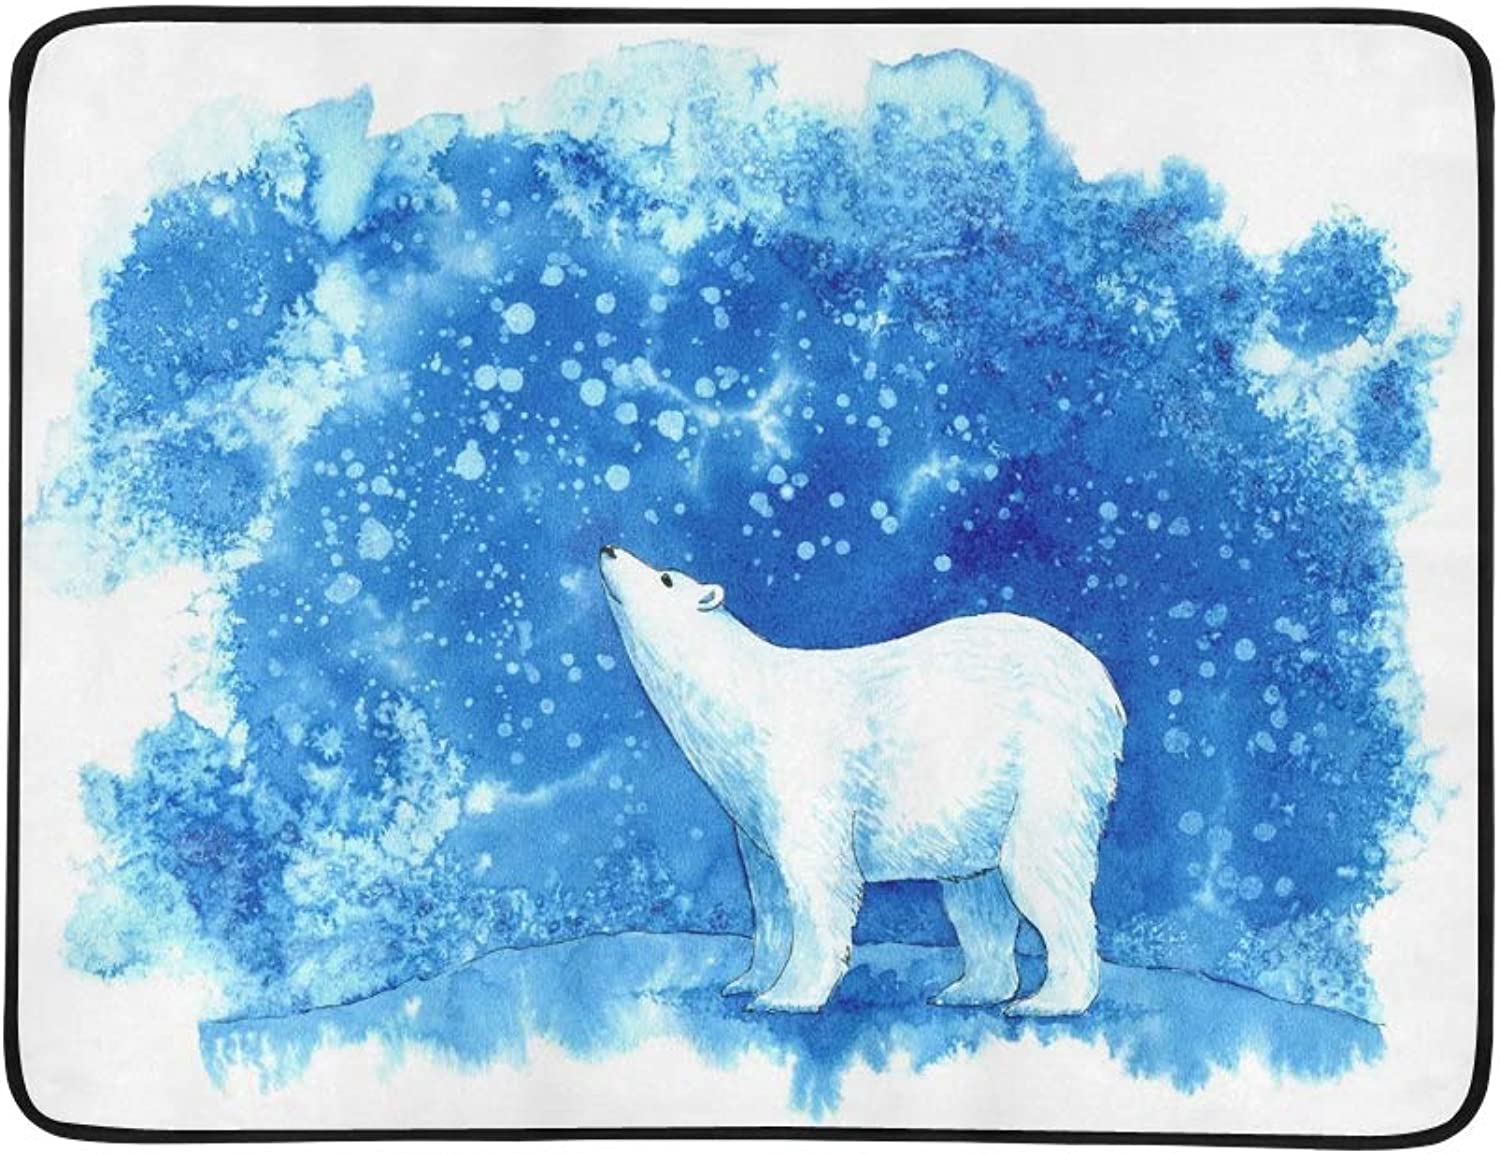 Polar Bearsnowflakes Sky Winter Landscape Animals Portable and Foldable Blanket Mat 60x78 Inch Handy Mat for Camping Picnic Beach Indoor Outdoor Travel